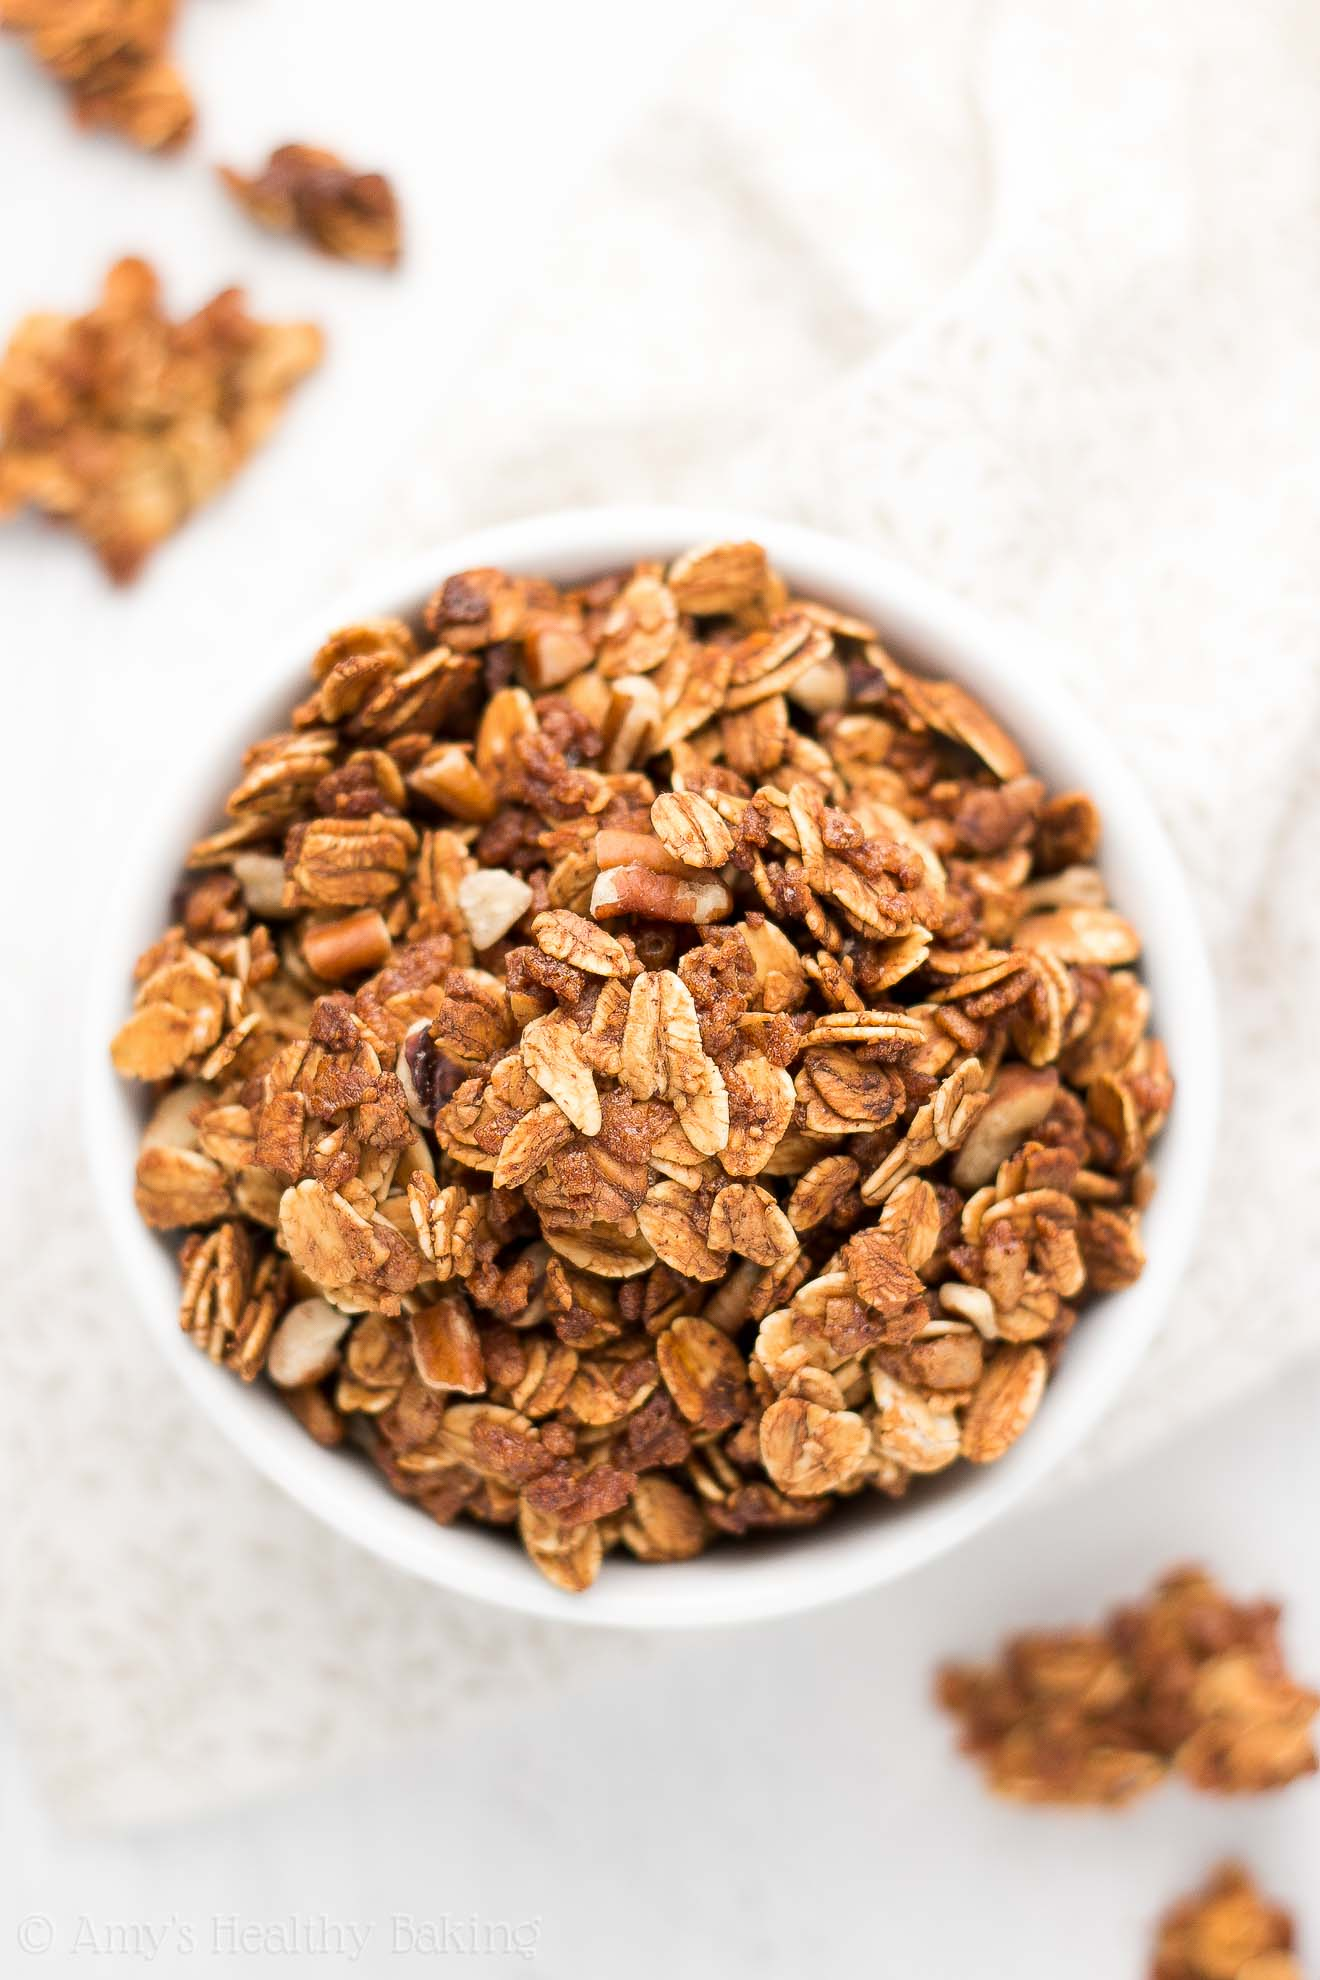 {HEALTHY!} Maple Pecan Granola -- only 7 ingredients & 139 calories! This one-bowl recipe is SO easy & tastes amazing! Plus a SECRET TRICK to getting those big, extra crunchy clusters!